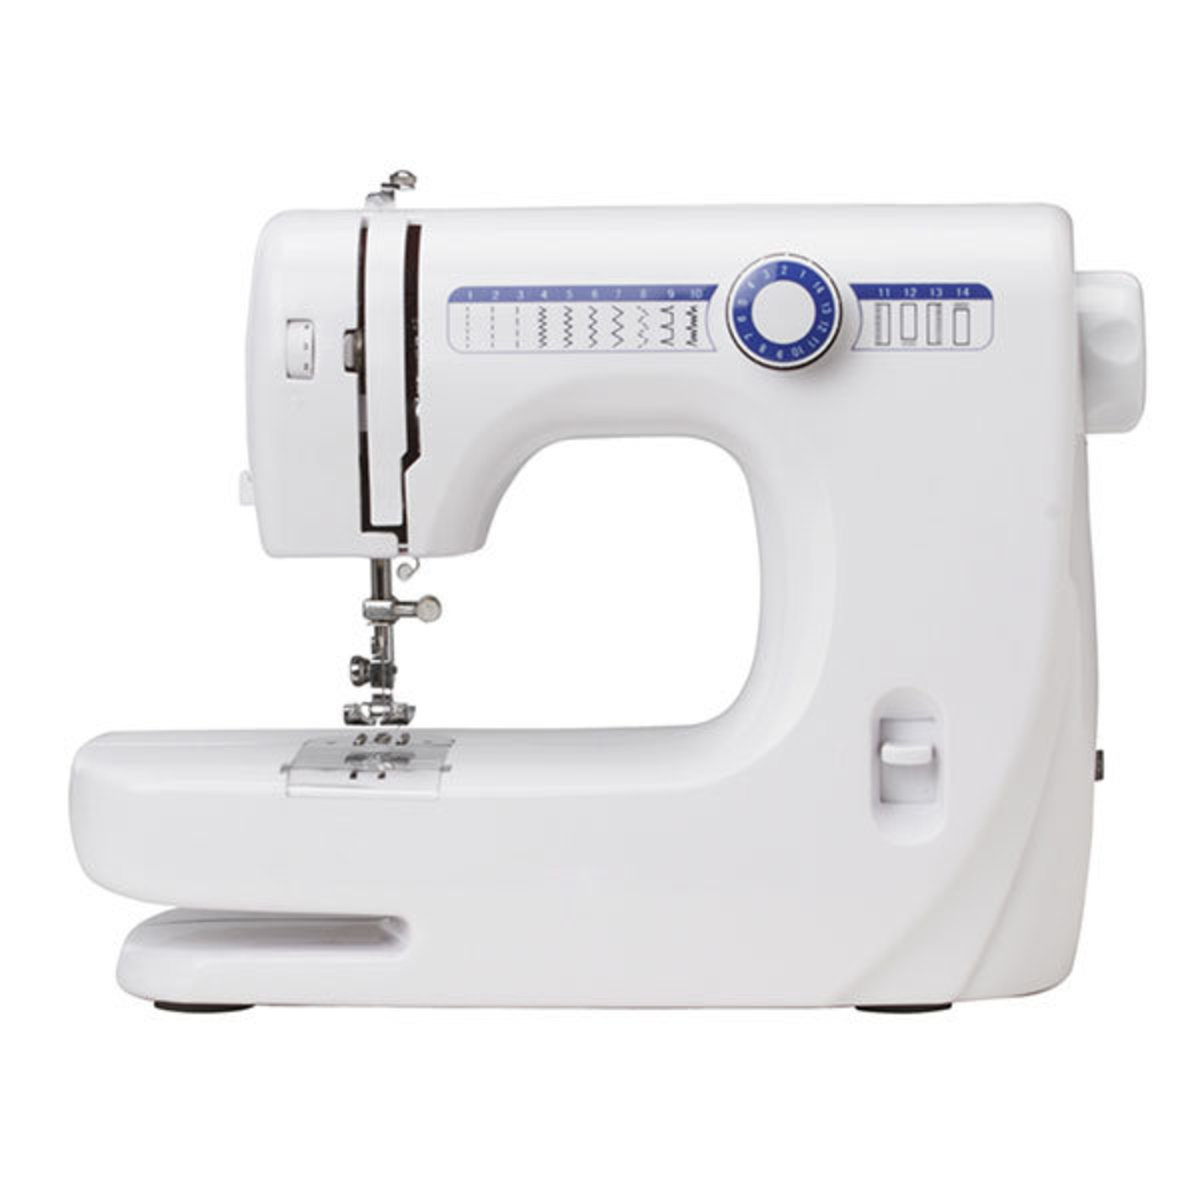 Korean electric household sewing machine 14 stitches multi-function with a lock to eat thick clothes